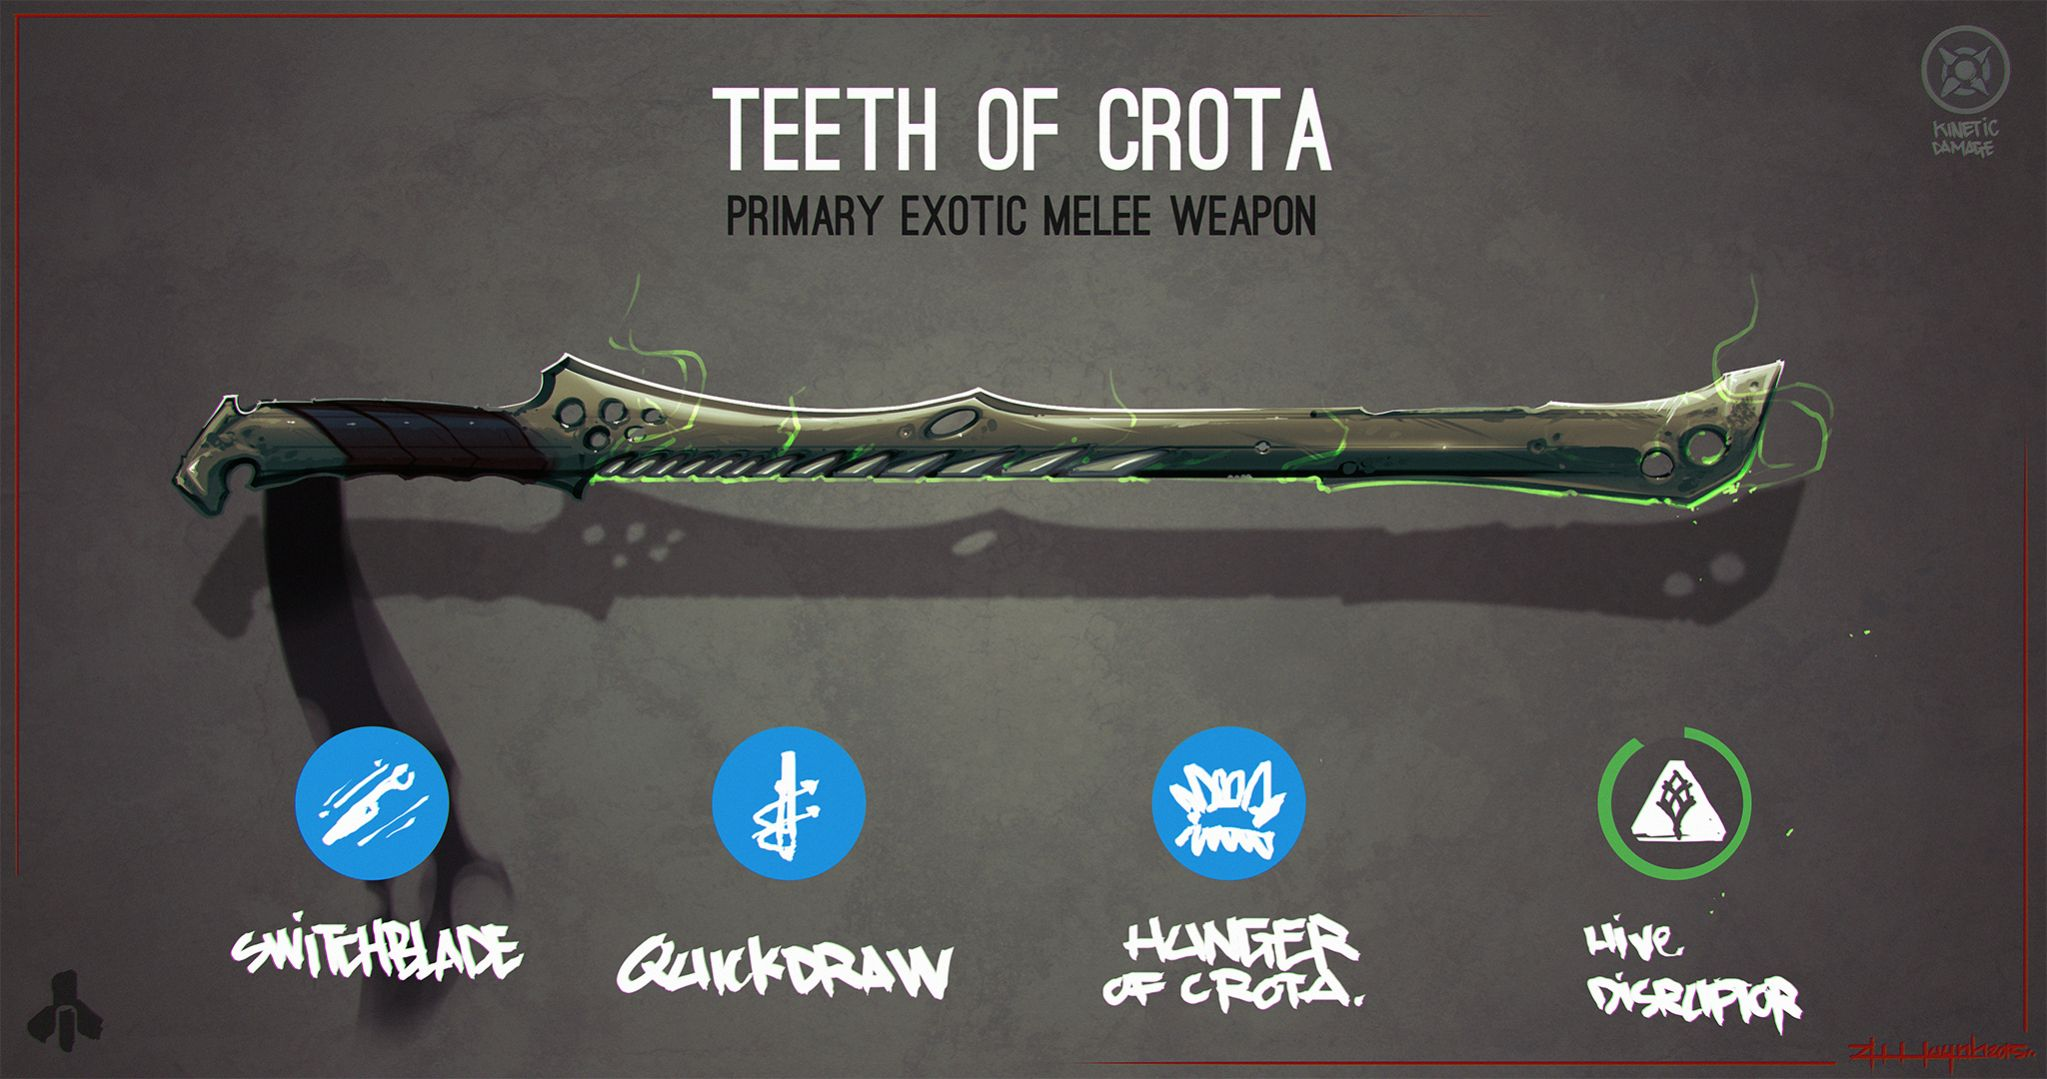 Drawn weapon destiny DestinyTheGame imgur jpg Teeth :